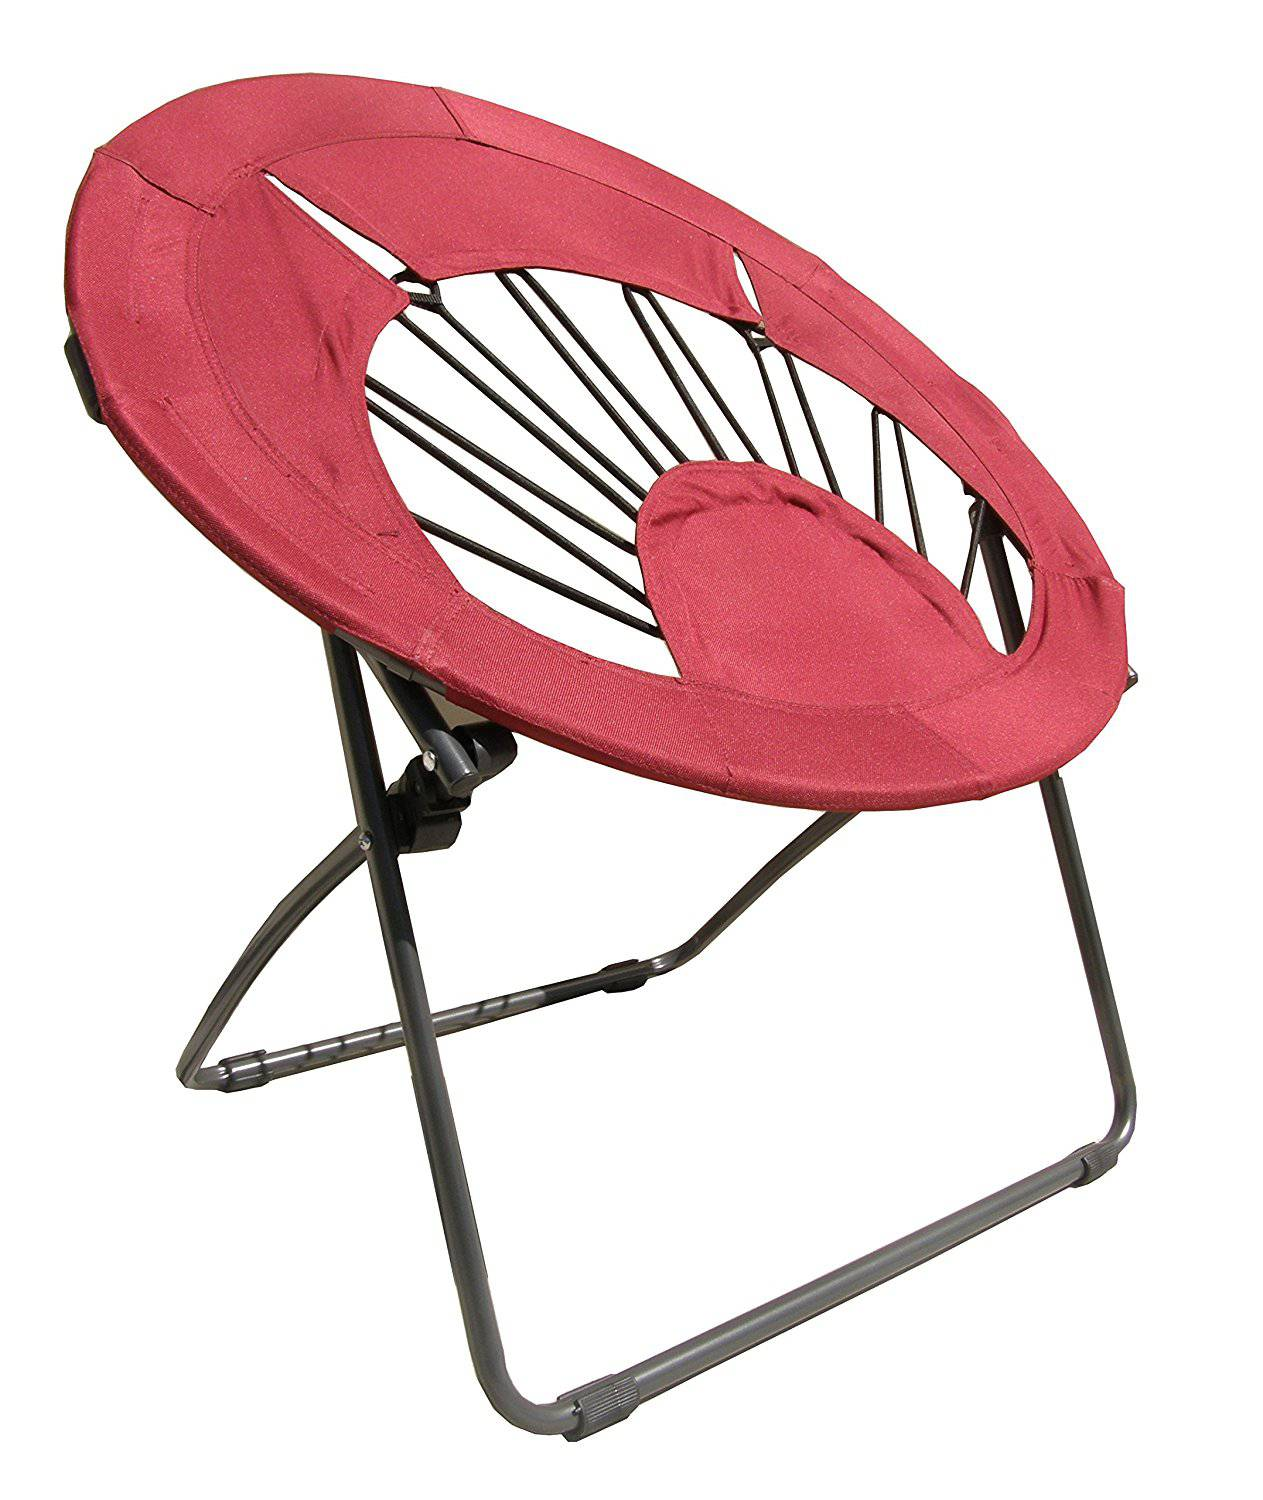 Top 25 Bungee Chairs (Bunjo Chairs) In One Page   Buy 7 Best Bunjo Bungee  Chair Types [In One Place]